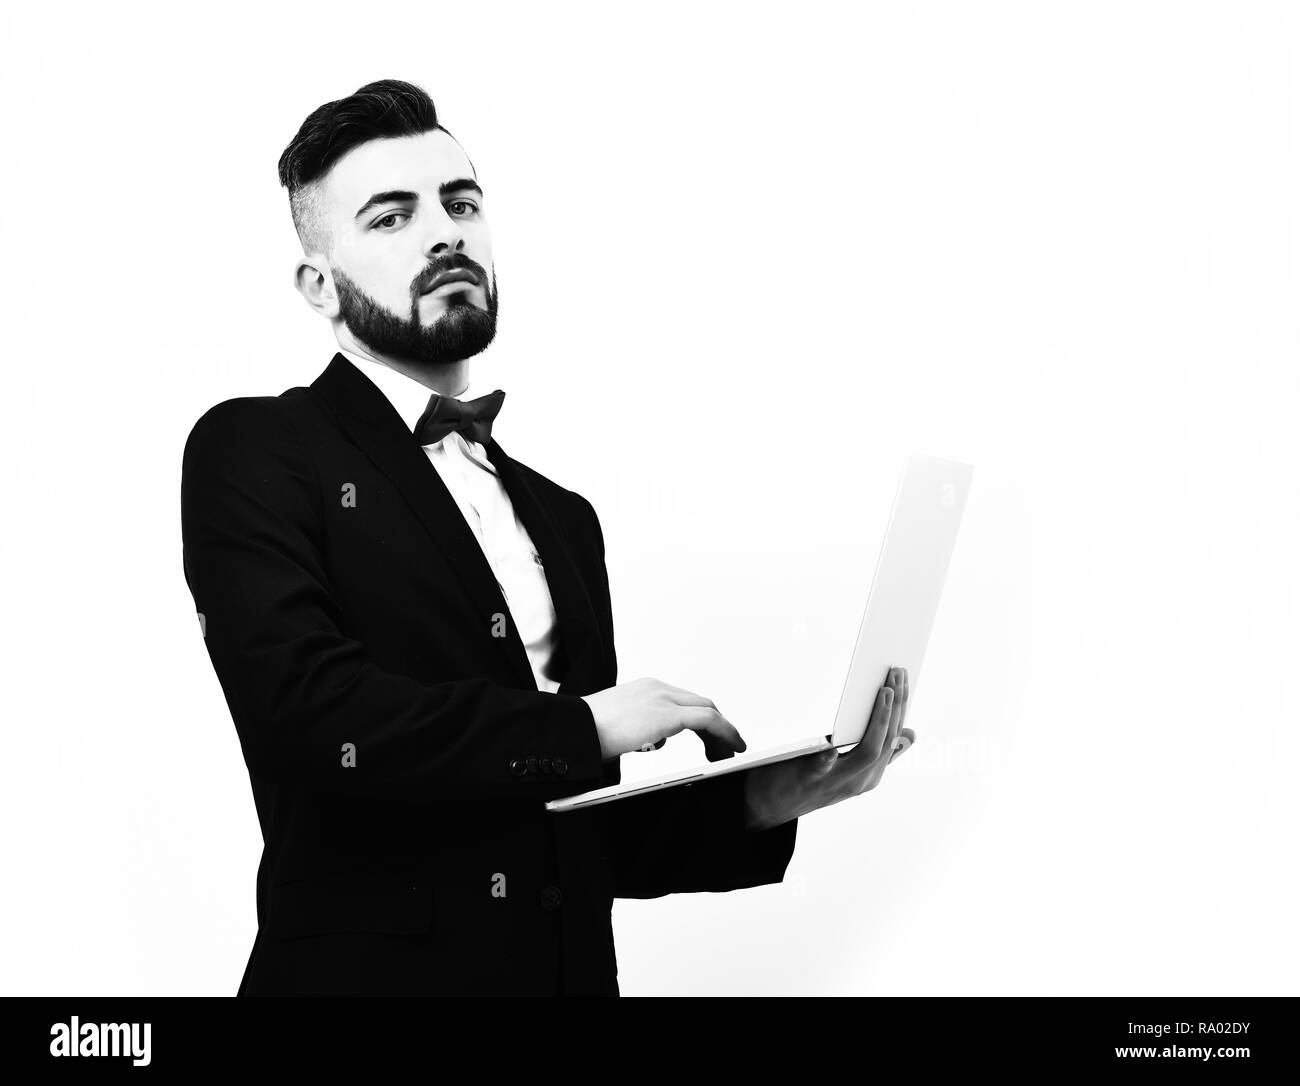 Businessman or insurance agent with beard and moustache, attentive look and serious face works on his laptop, isolated on white background, copy space. Concept of high technology and working online - Stock Image